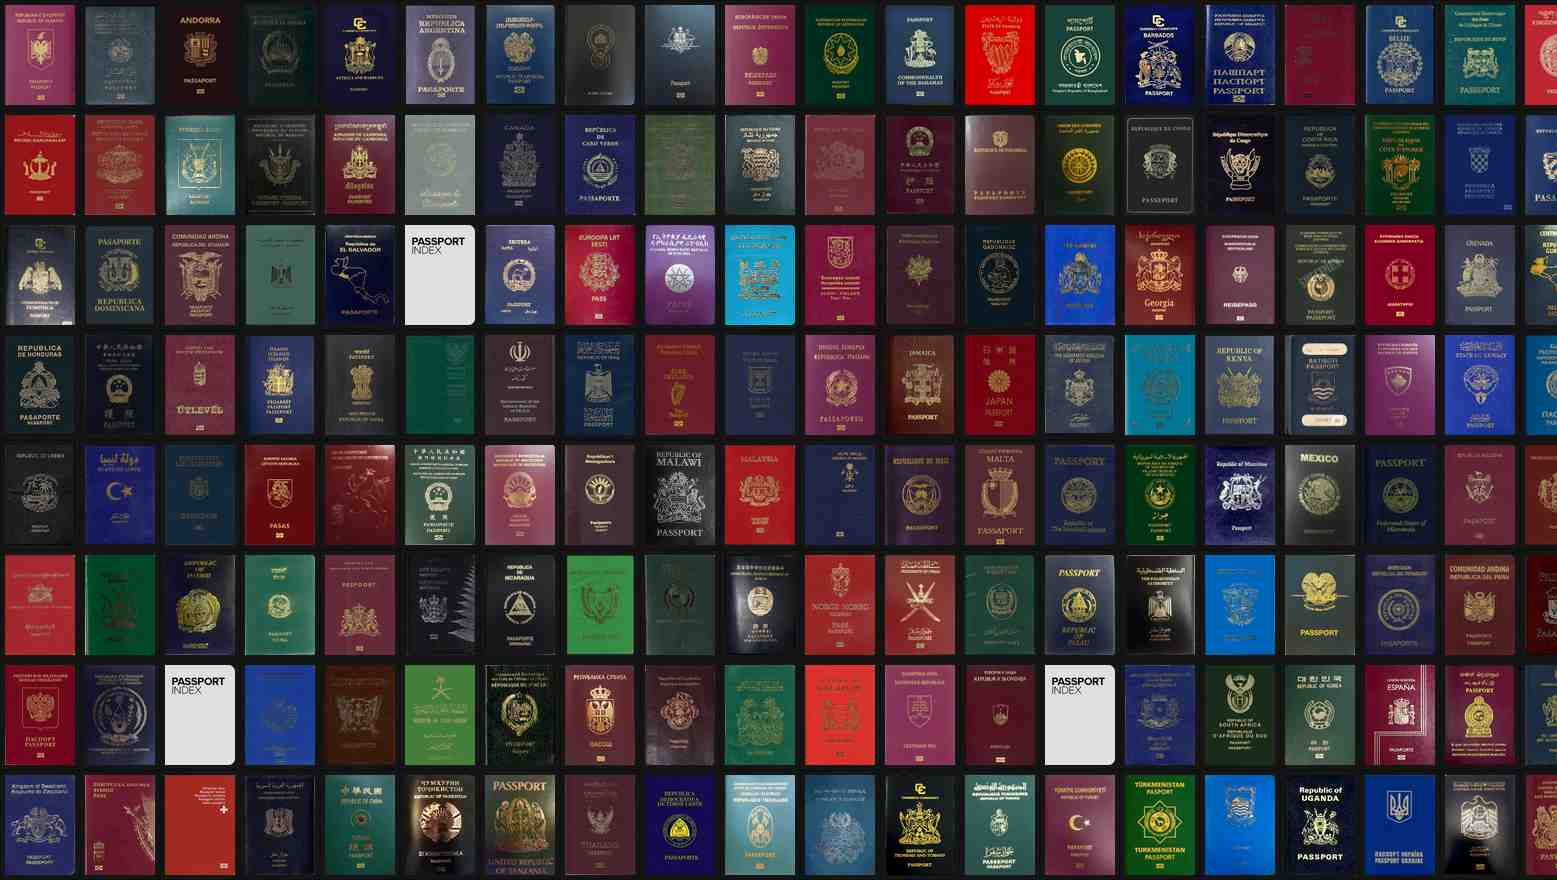 The most powerful passports in the world, ranked — Quartz